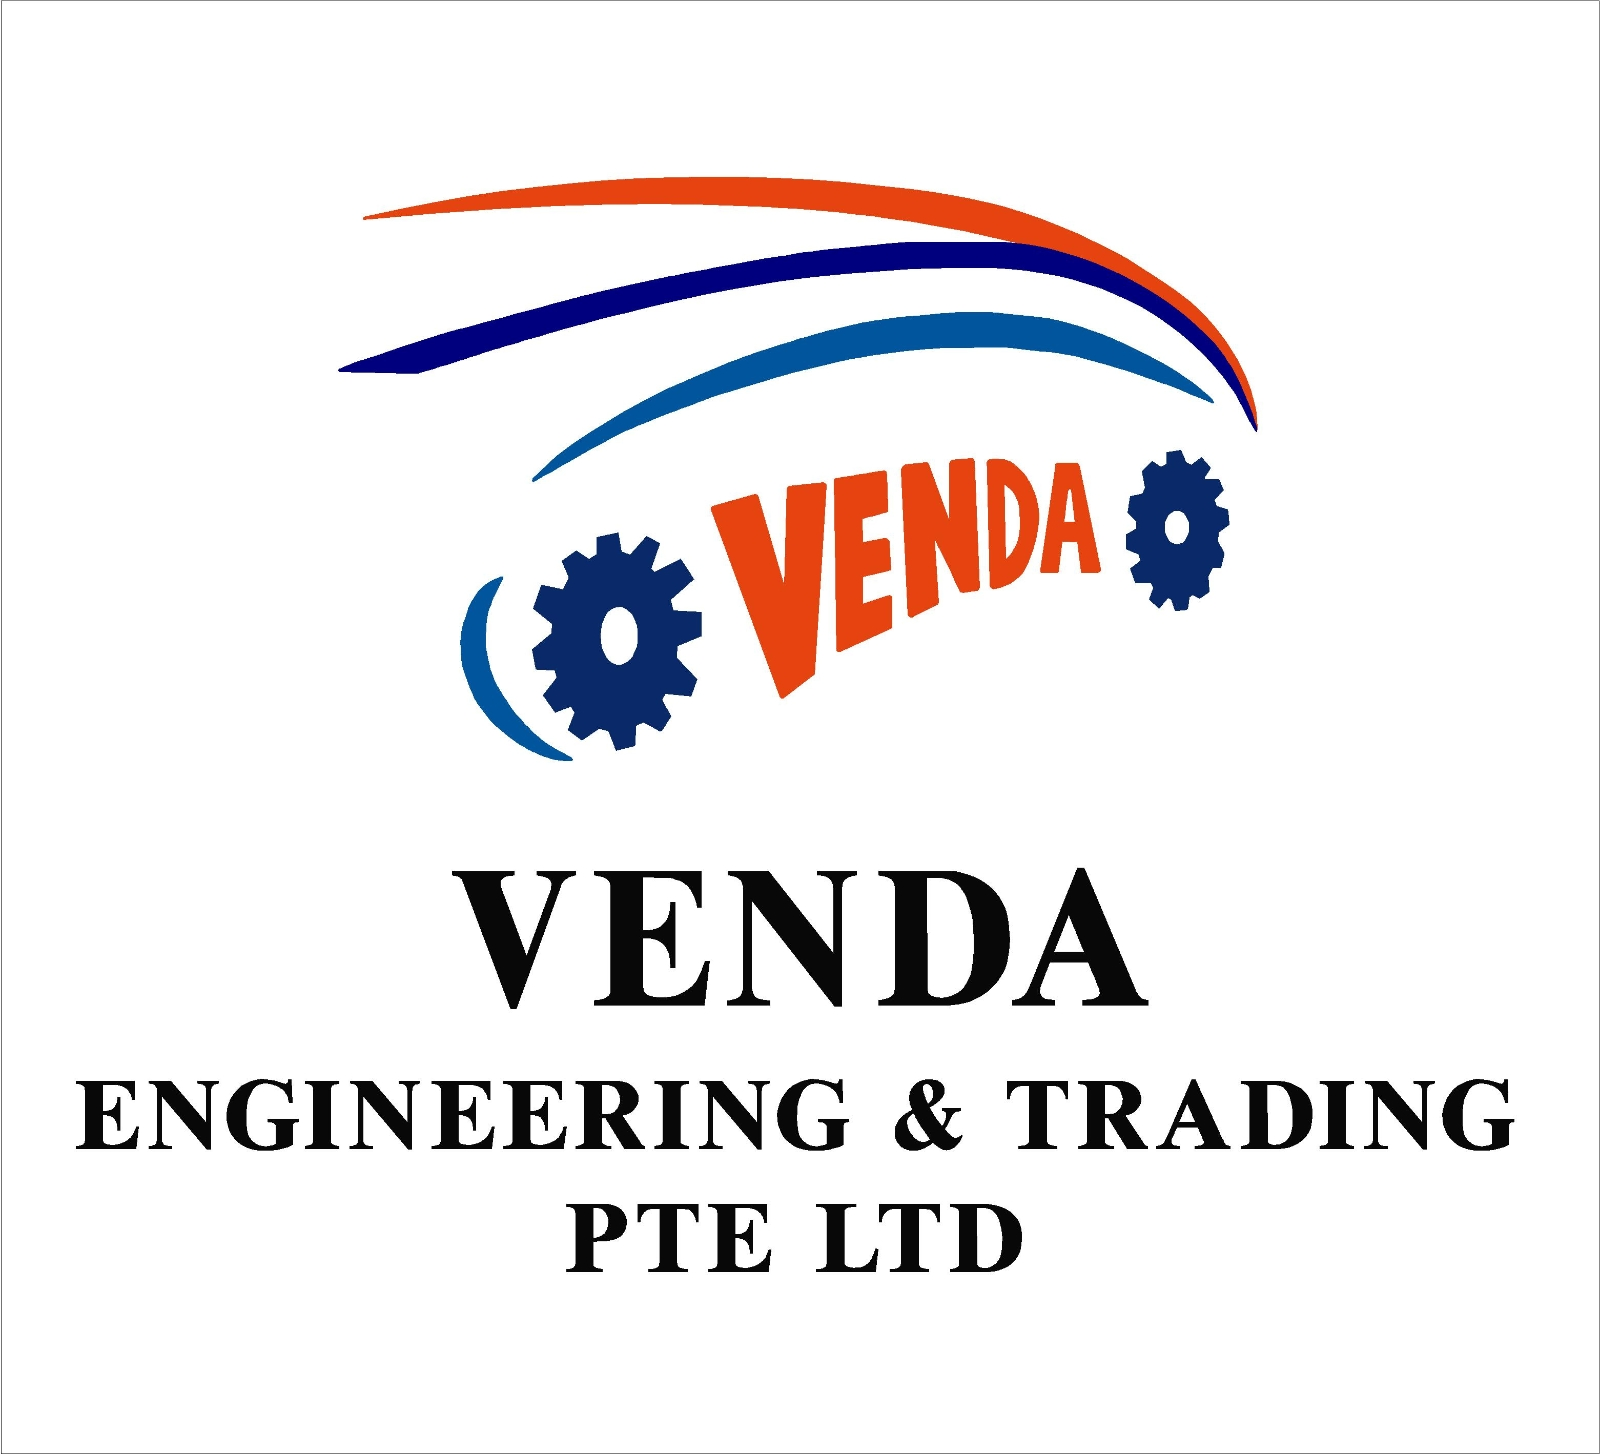 VENDA ENGINEERING & TRADING PTE. LTD